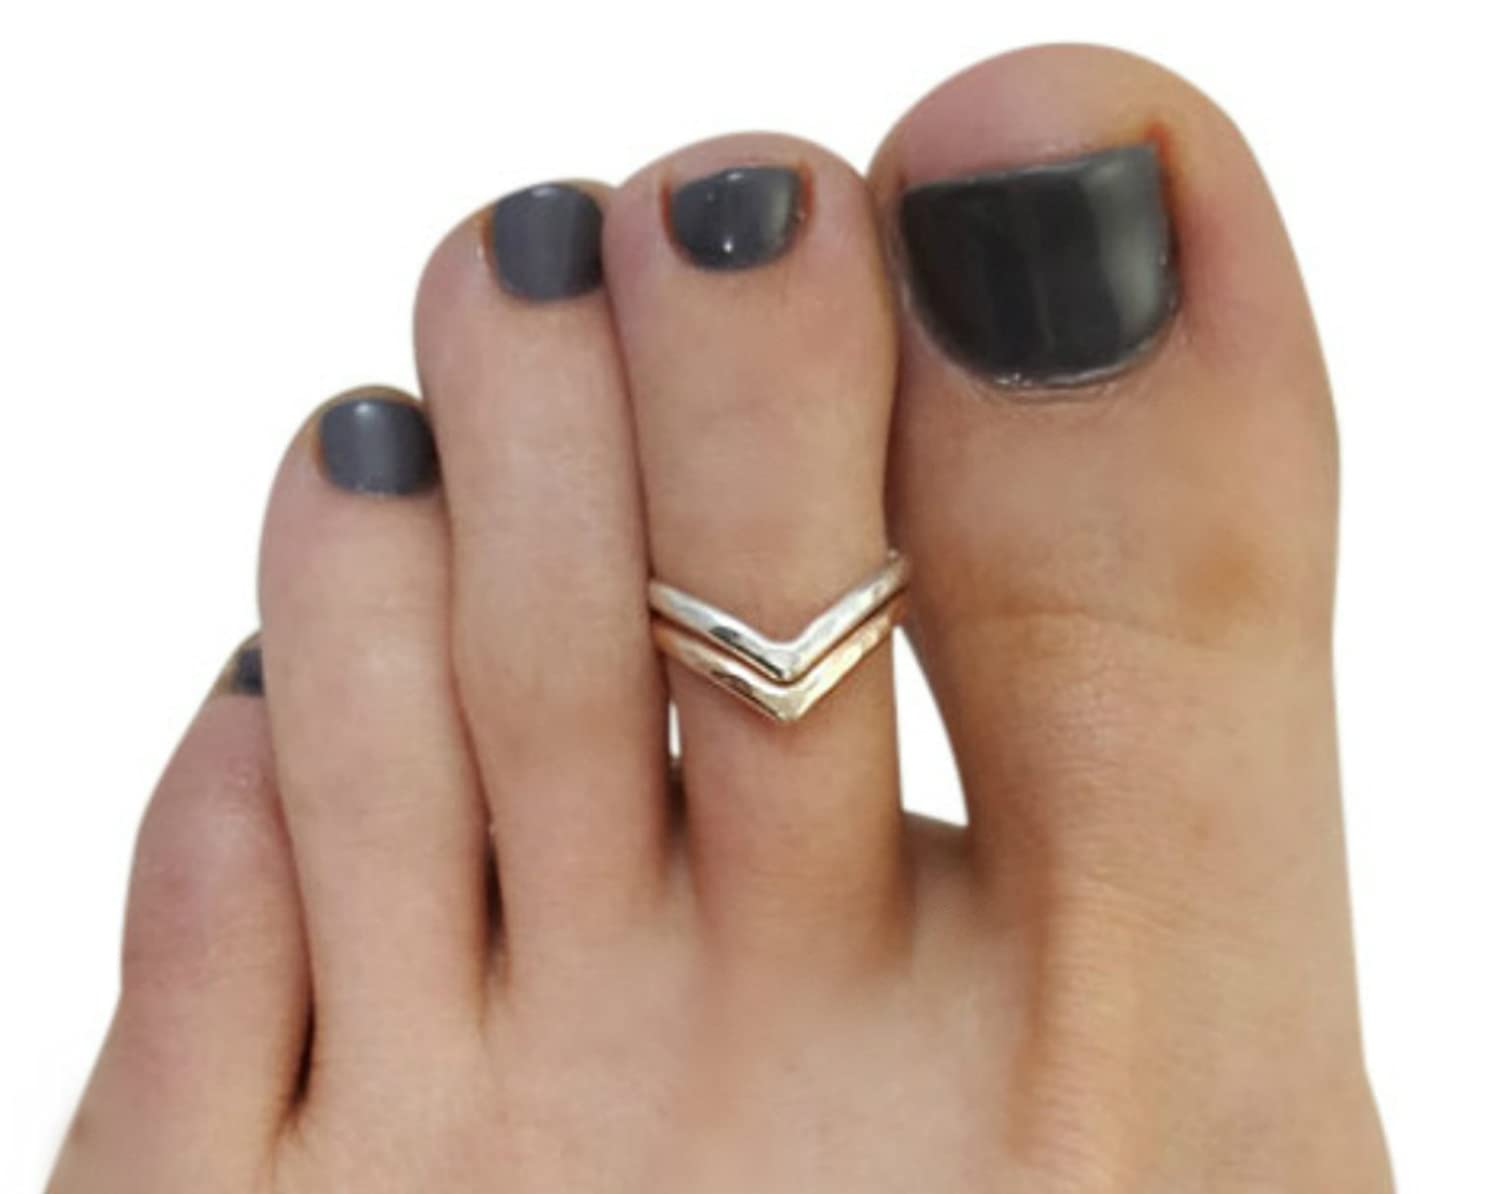 14K Gold filled Chevron V Adjustable Toe Ring California Toe Rings R21-mix